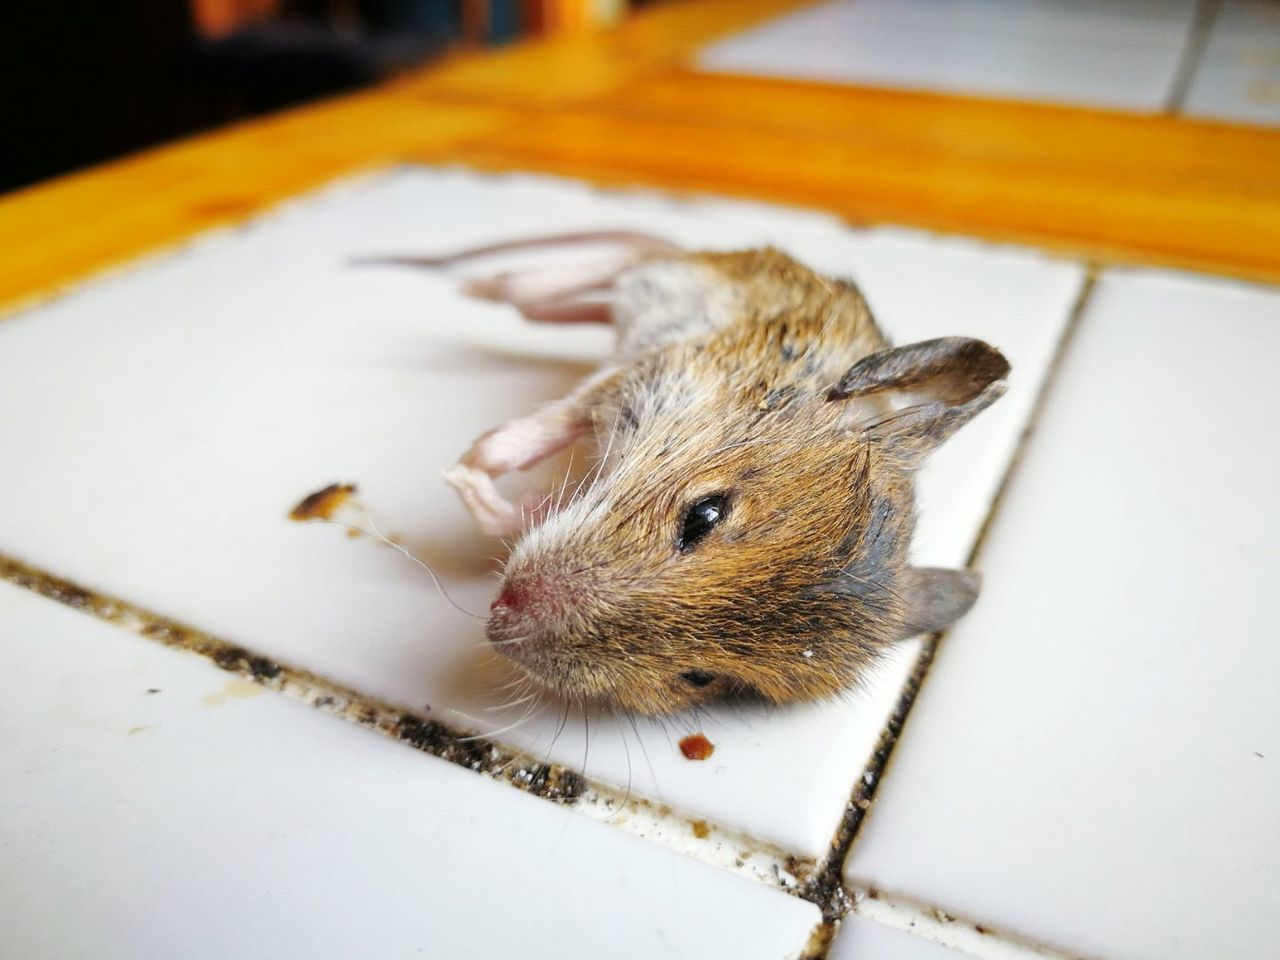 EyeEm Selects 🐁 Rodent One Animal Animal Themes Animal Wildlife Indoors  Close-up No People Animals In The Wild Mammal Pets Day Food